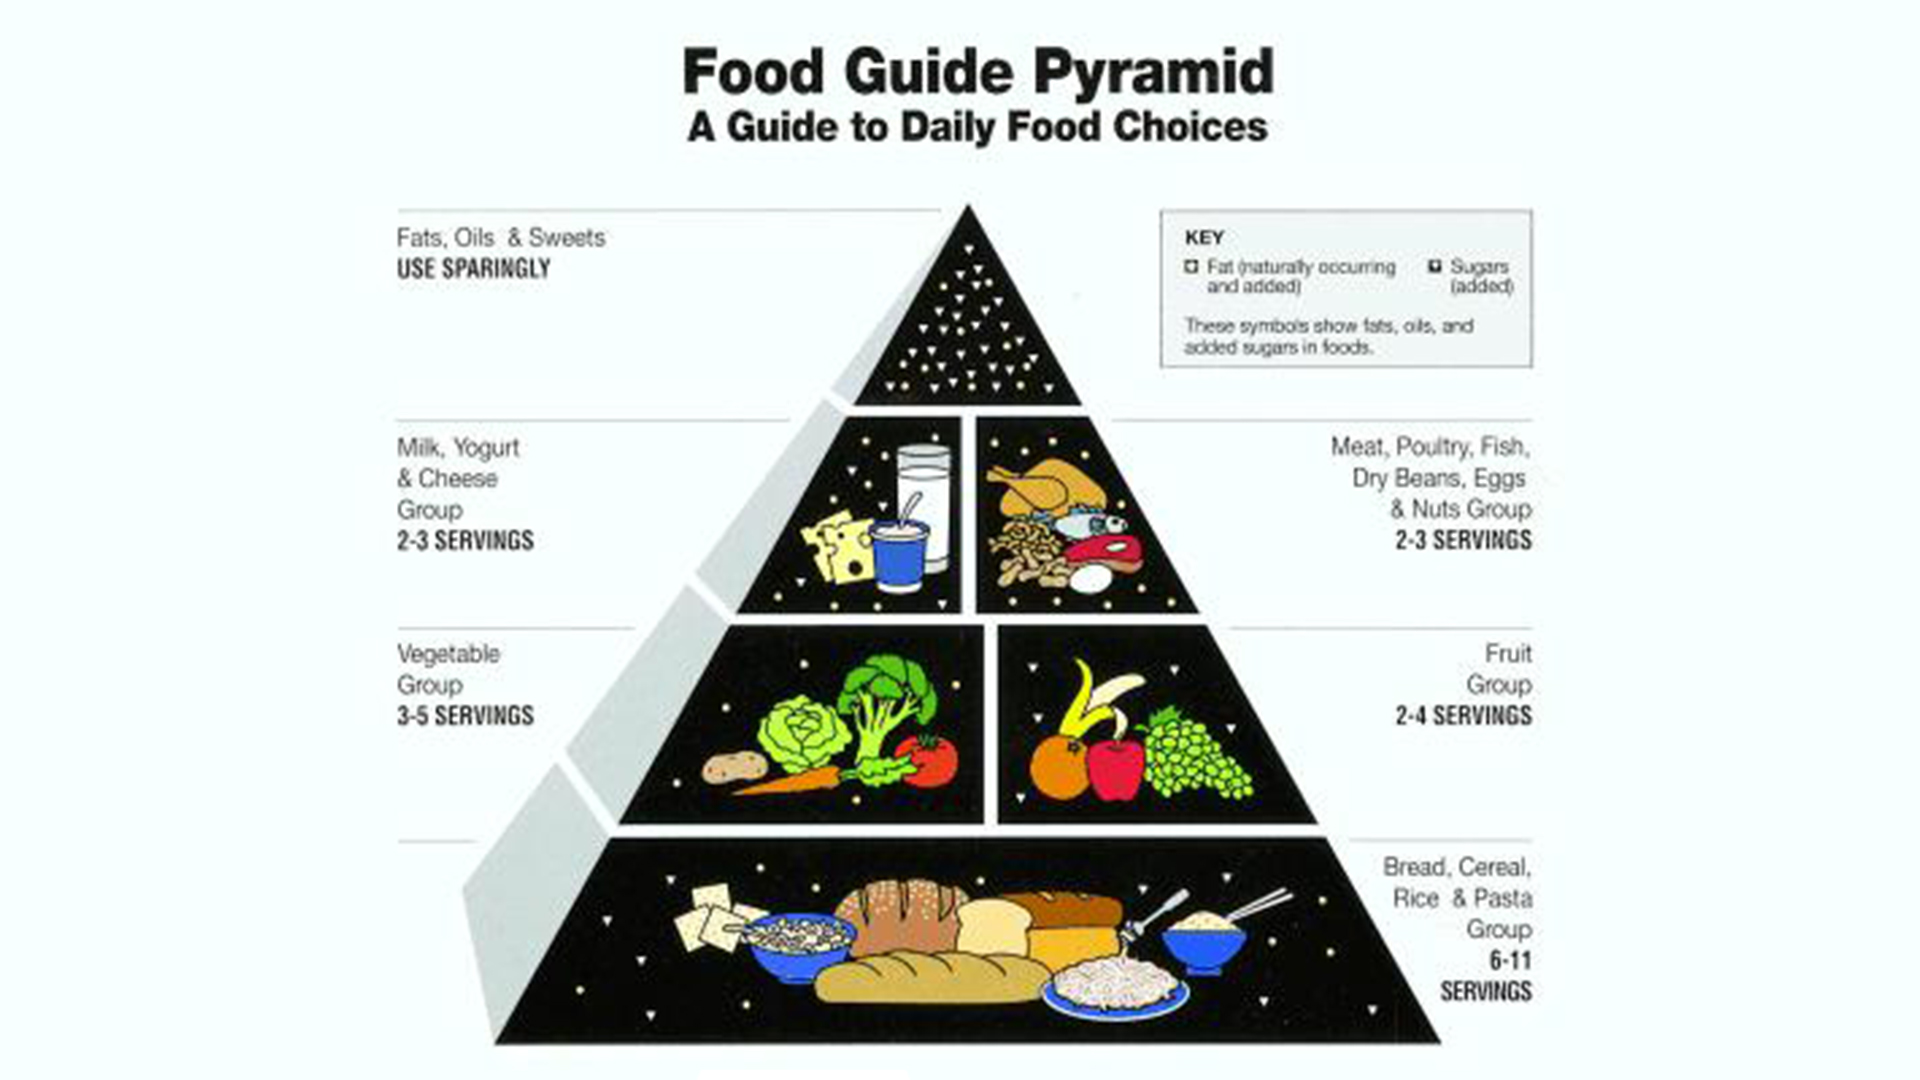 USDA Human Nutrition Information Service created Food Guide Pyramid (1991)